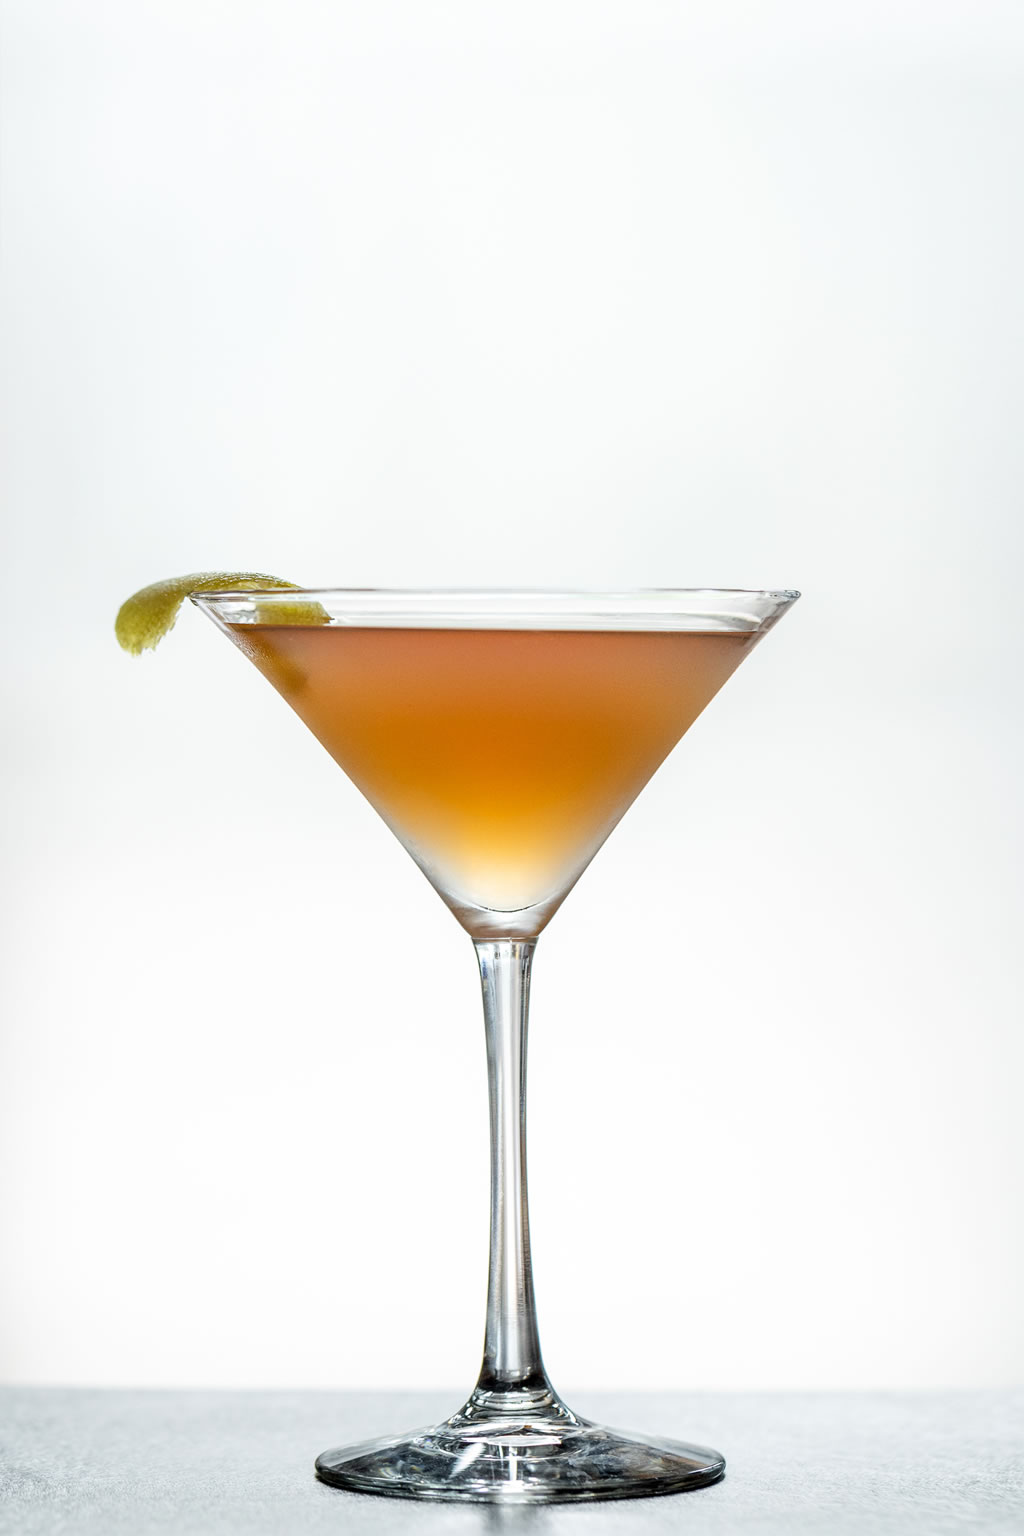 09-2019_OTOTO_Cocktail_Final Images_Web-Res_24